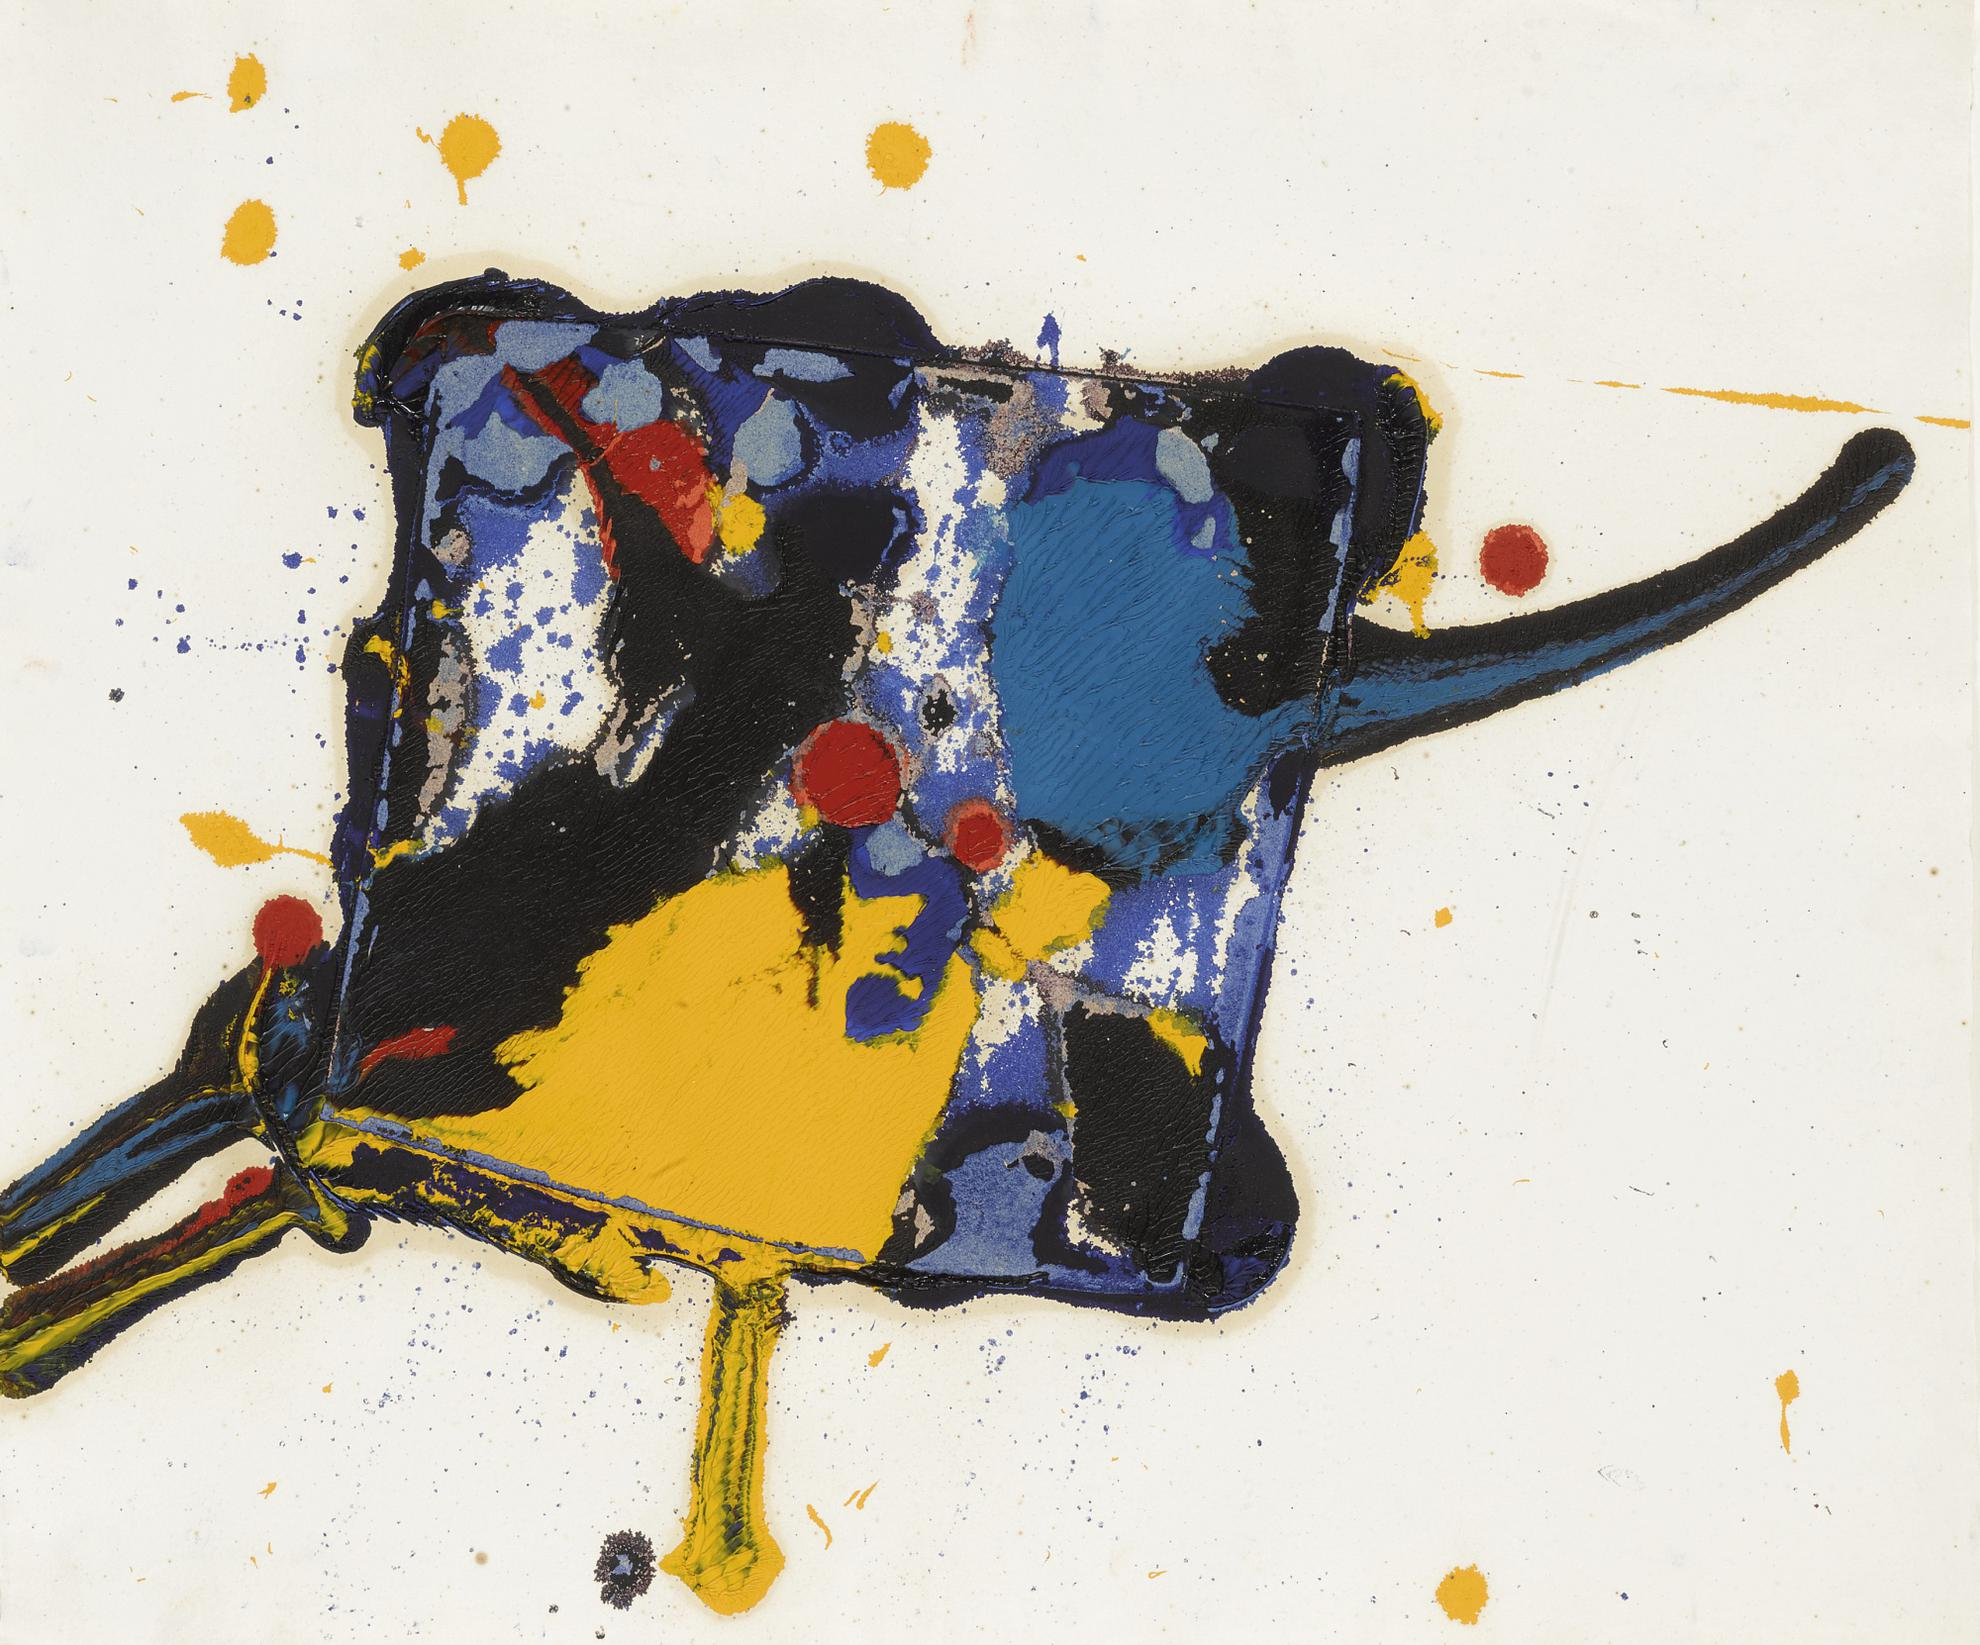 Sam Francis-Untitled (Sfm 77-003)-1977